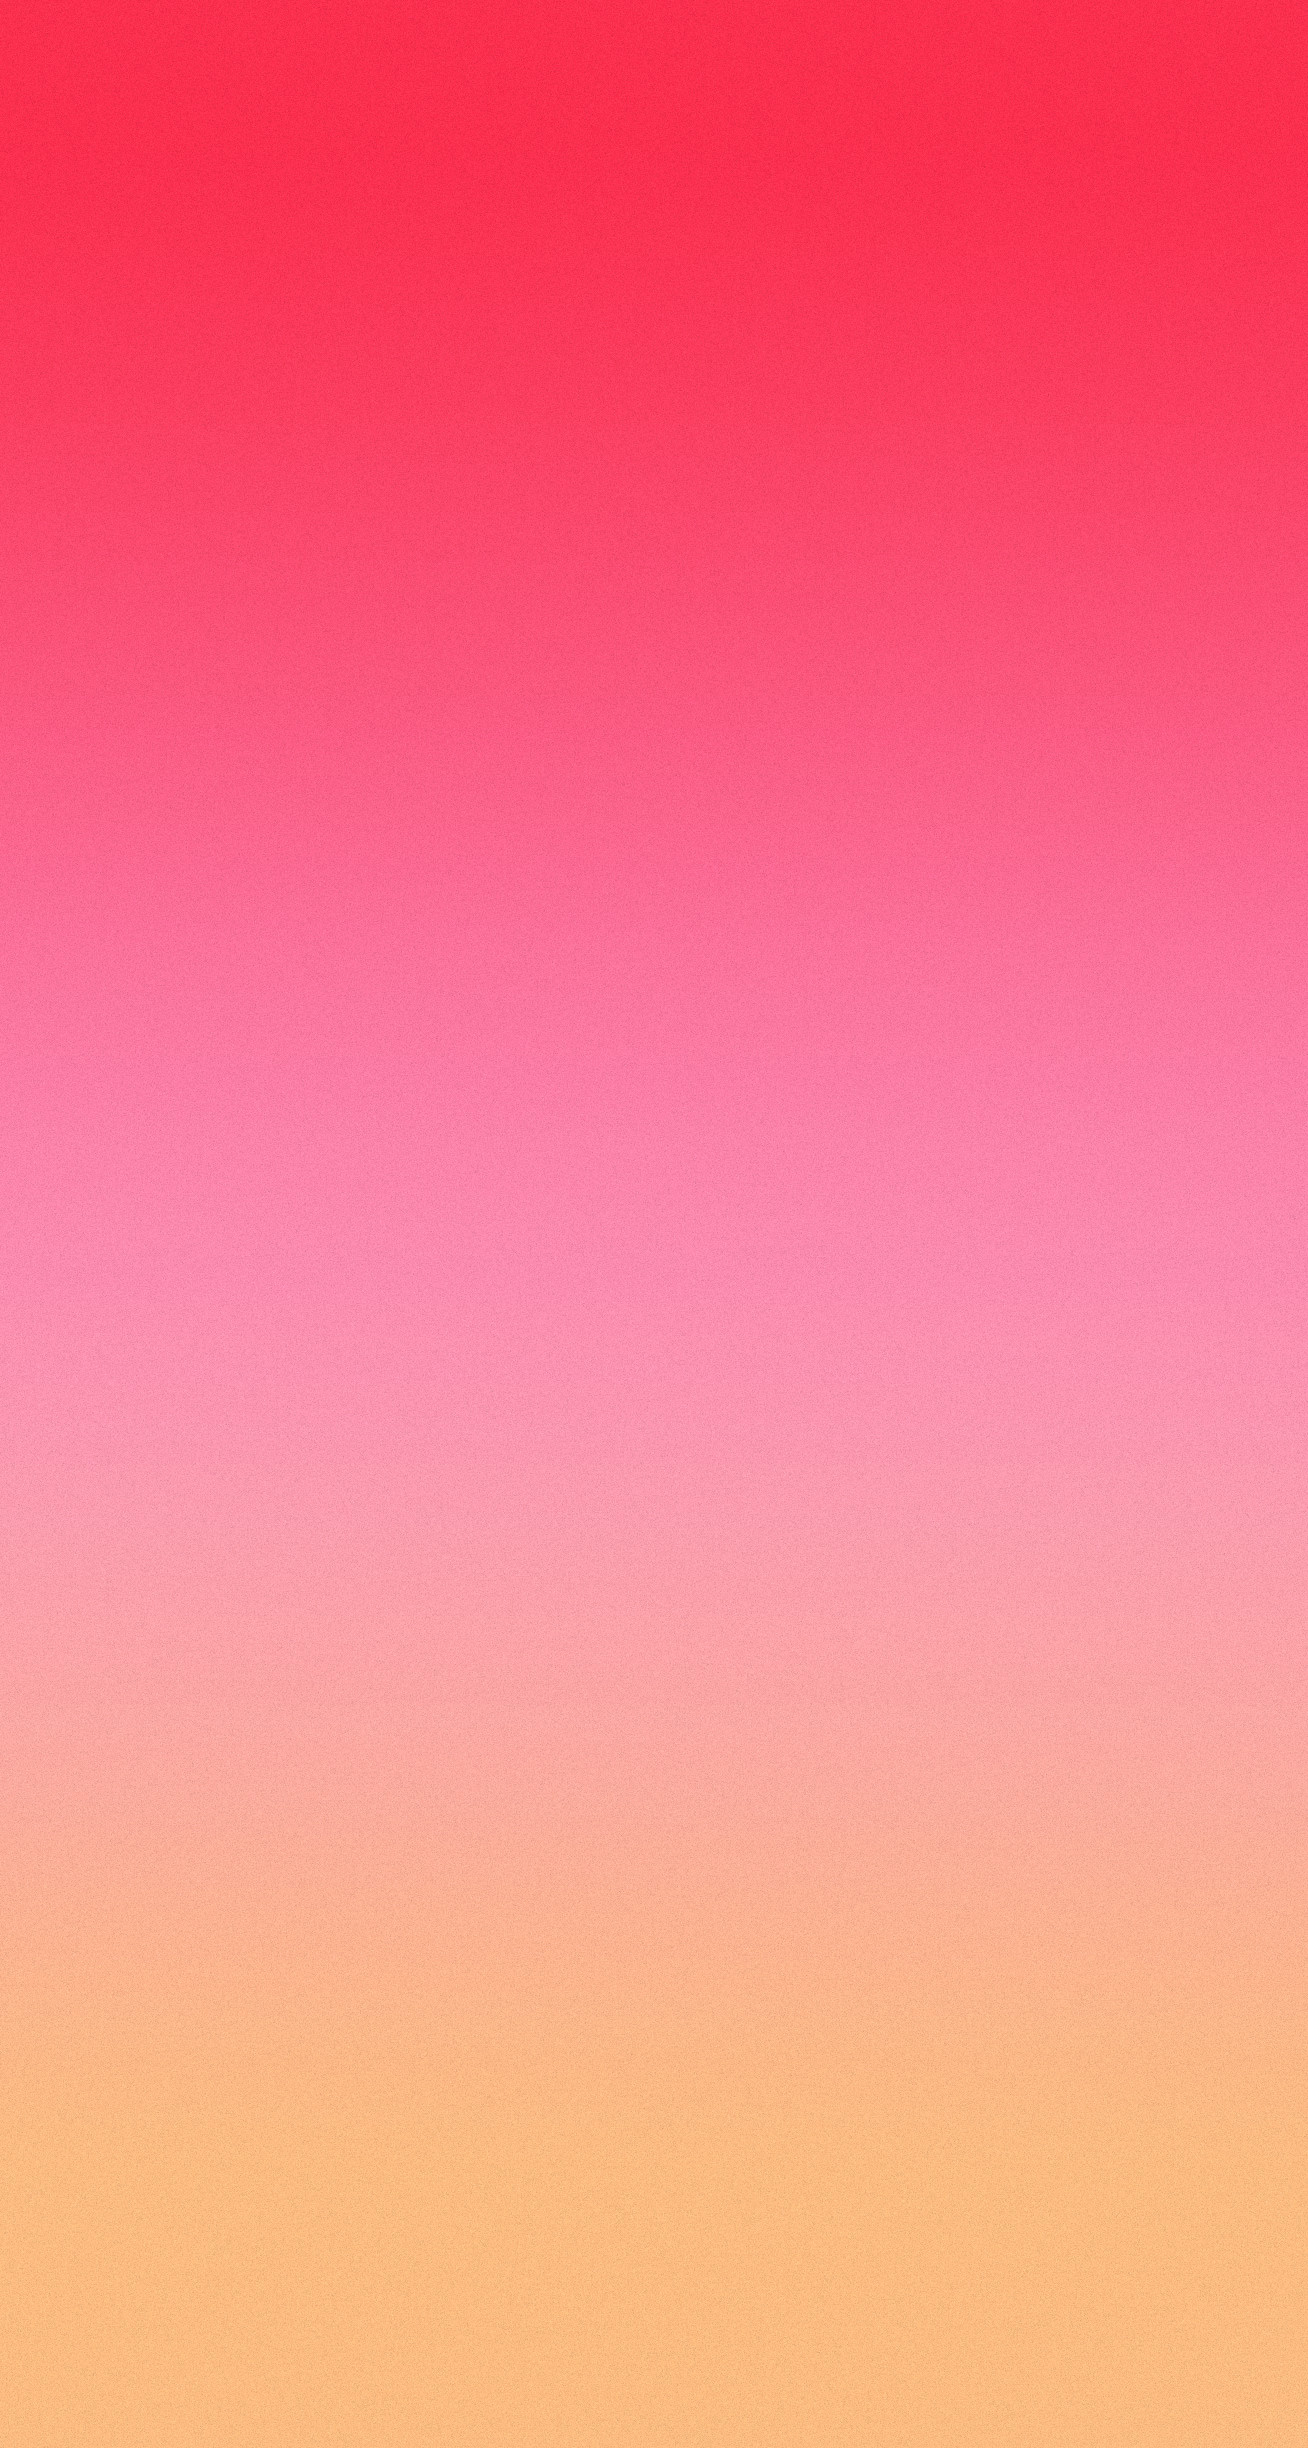 Pink Iphone Background Tumblr Image For Iphone Wallpaper Tumblr Cool  Wallpapers | 2017 Quotes …